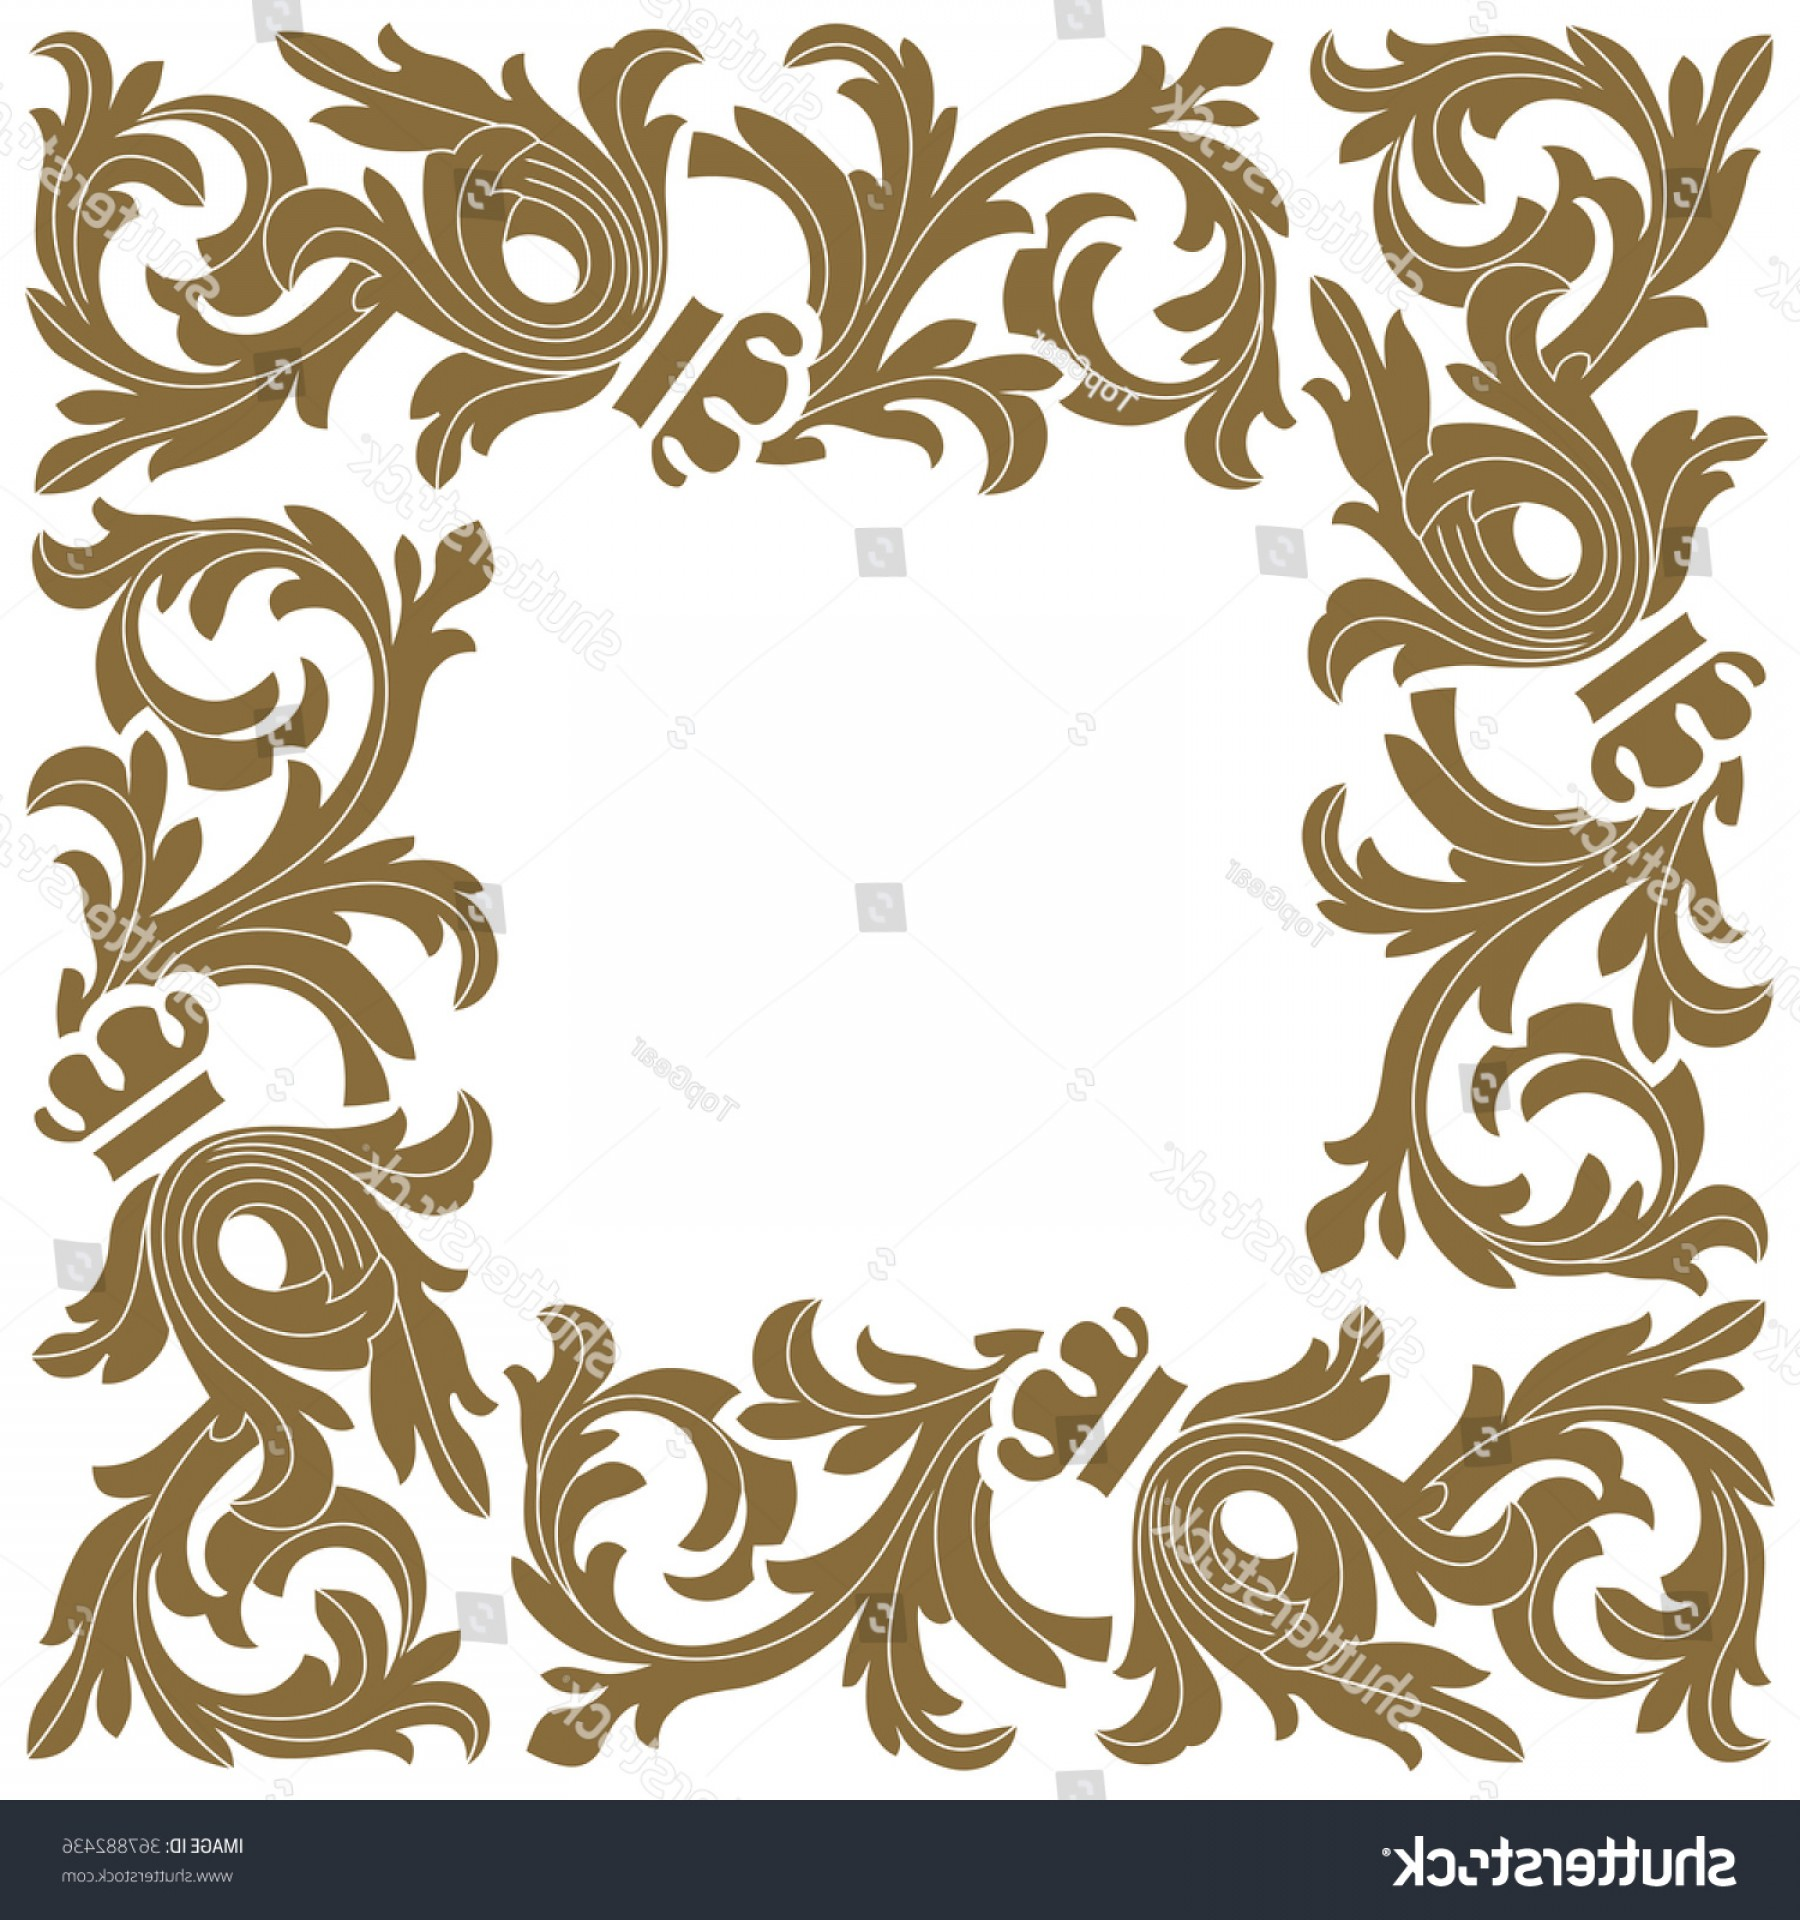 Filigree Oval Frame Vector: Golden Vintage Baroque Frame Scroll Ornament